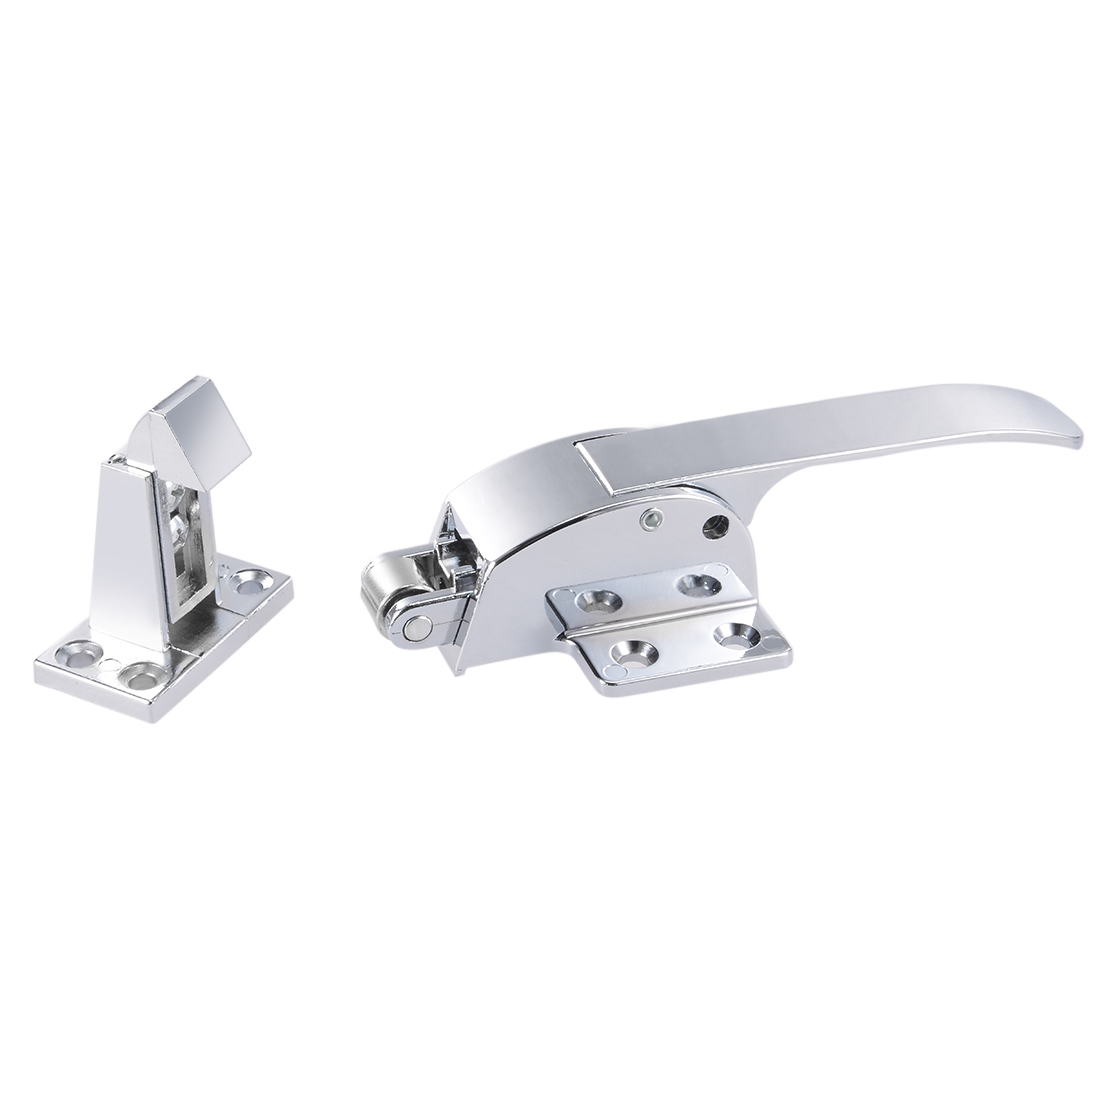 165mmx69mm Zinc Alloy Adjustable Latch Spring Loaded Freezer Door Grip Handle